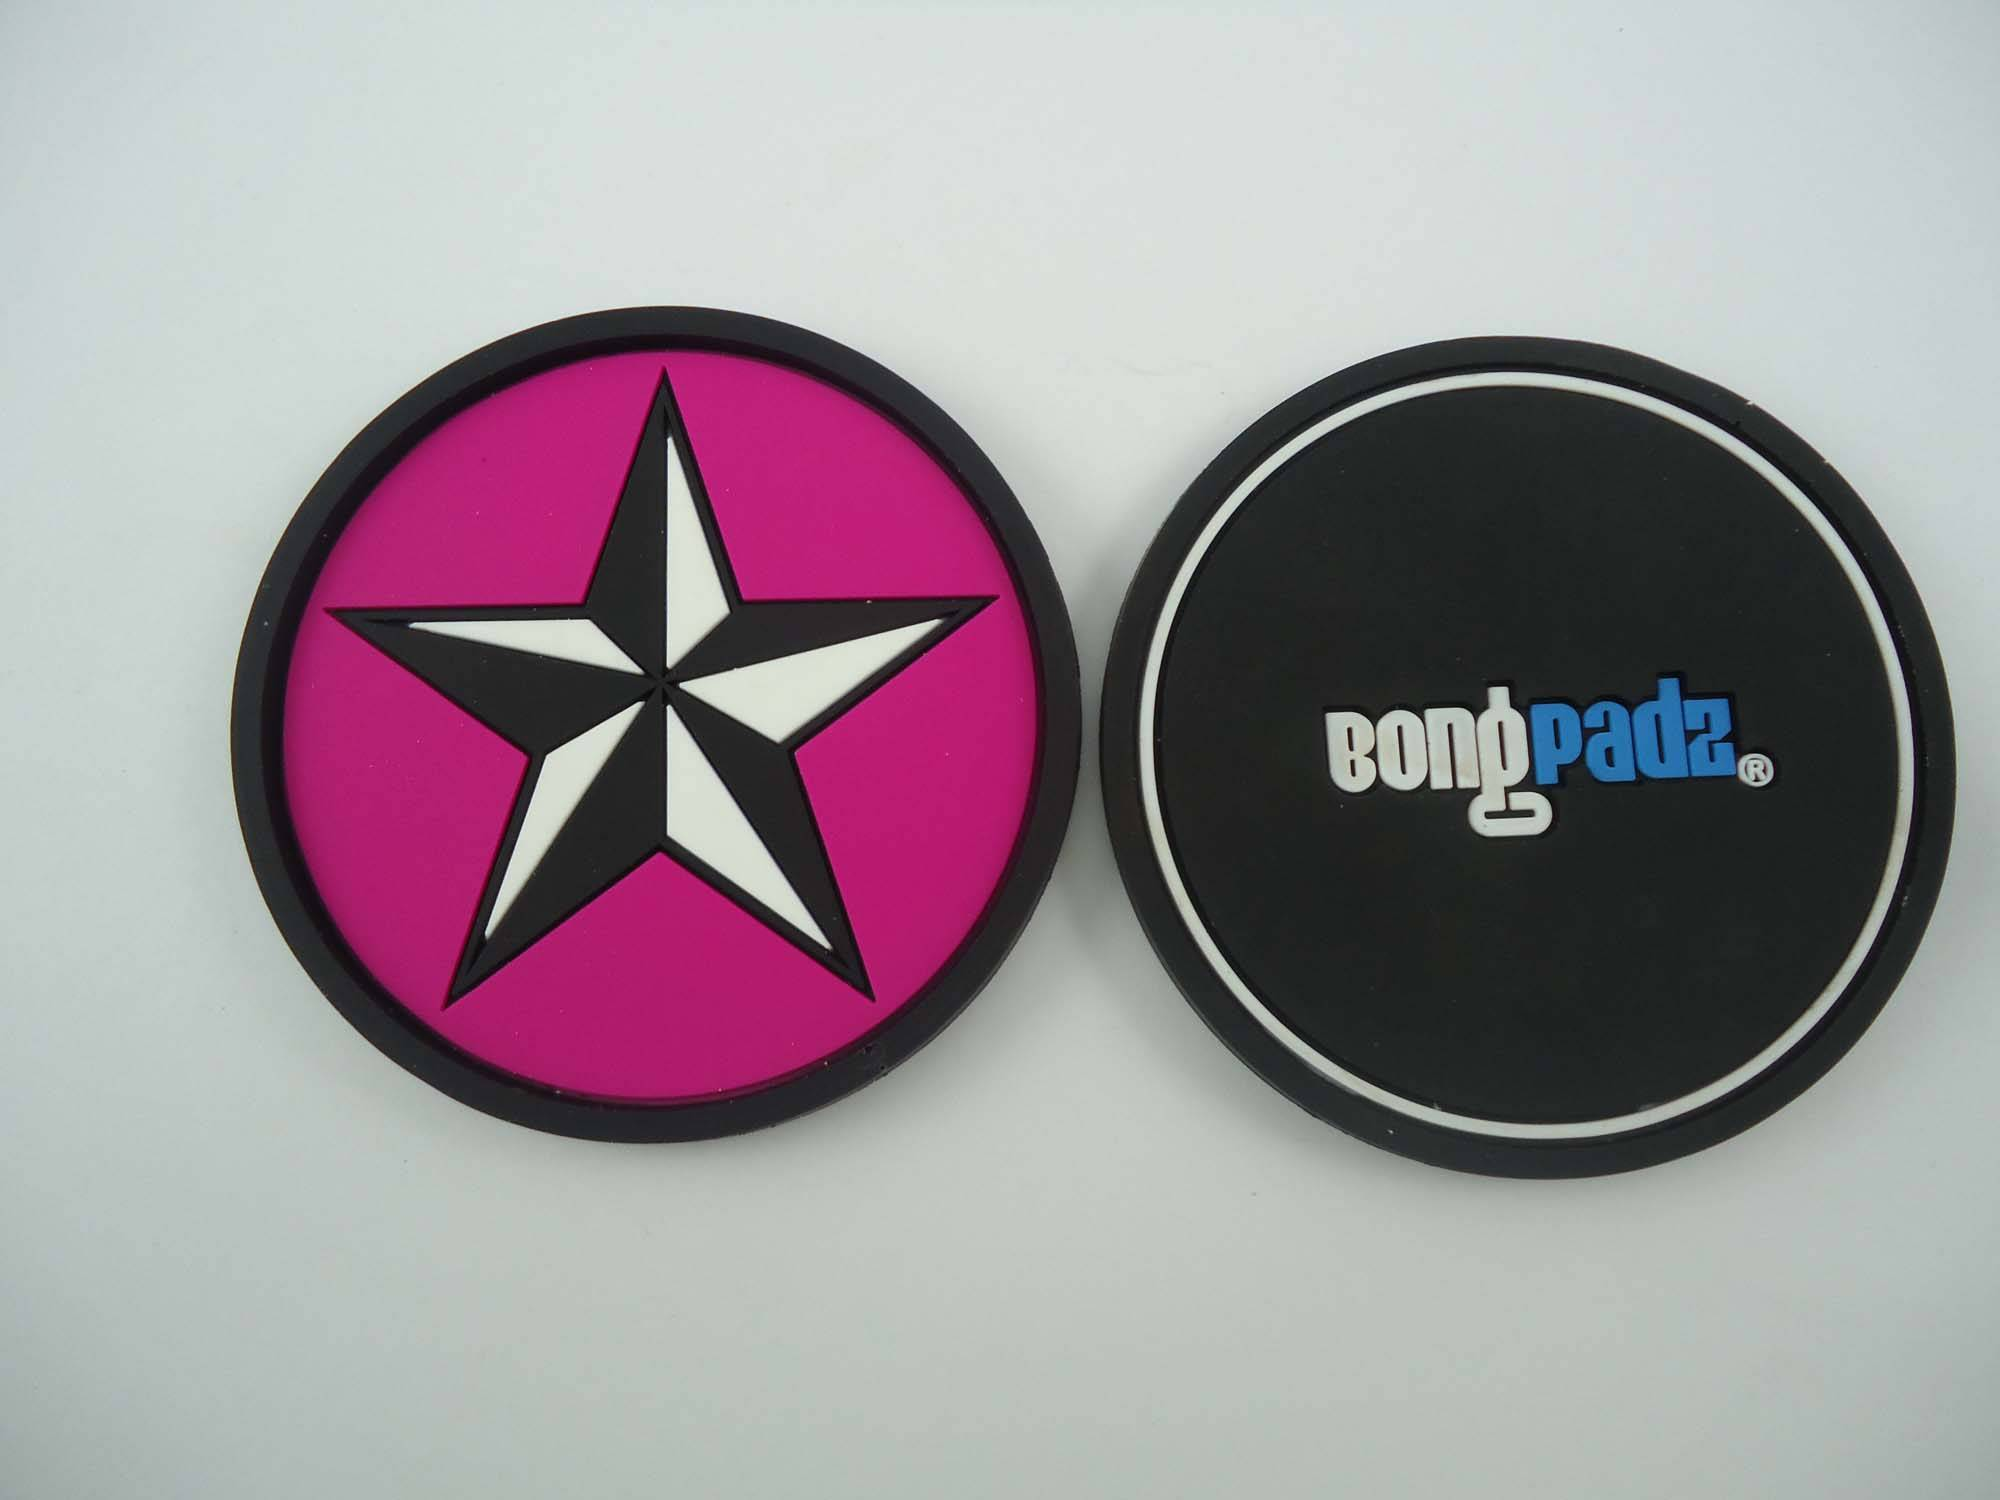 soft pvc rubber coaster